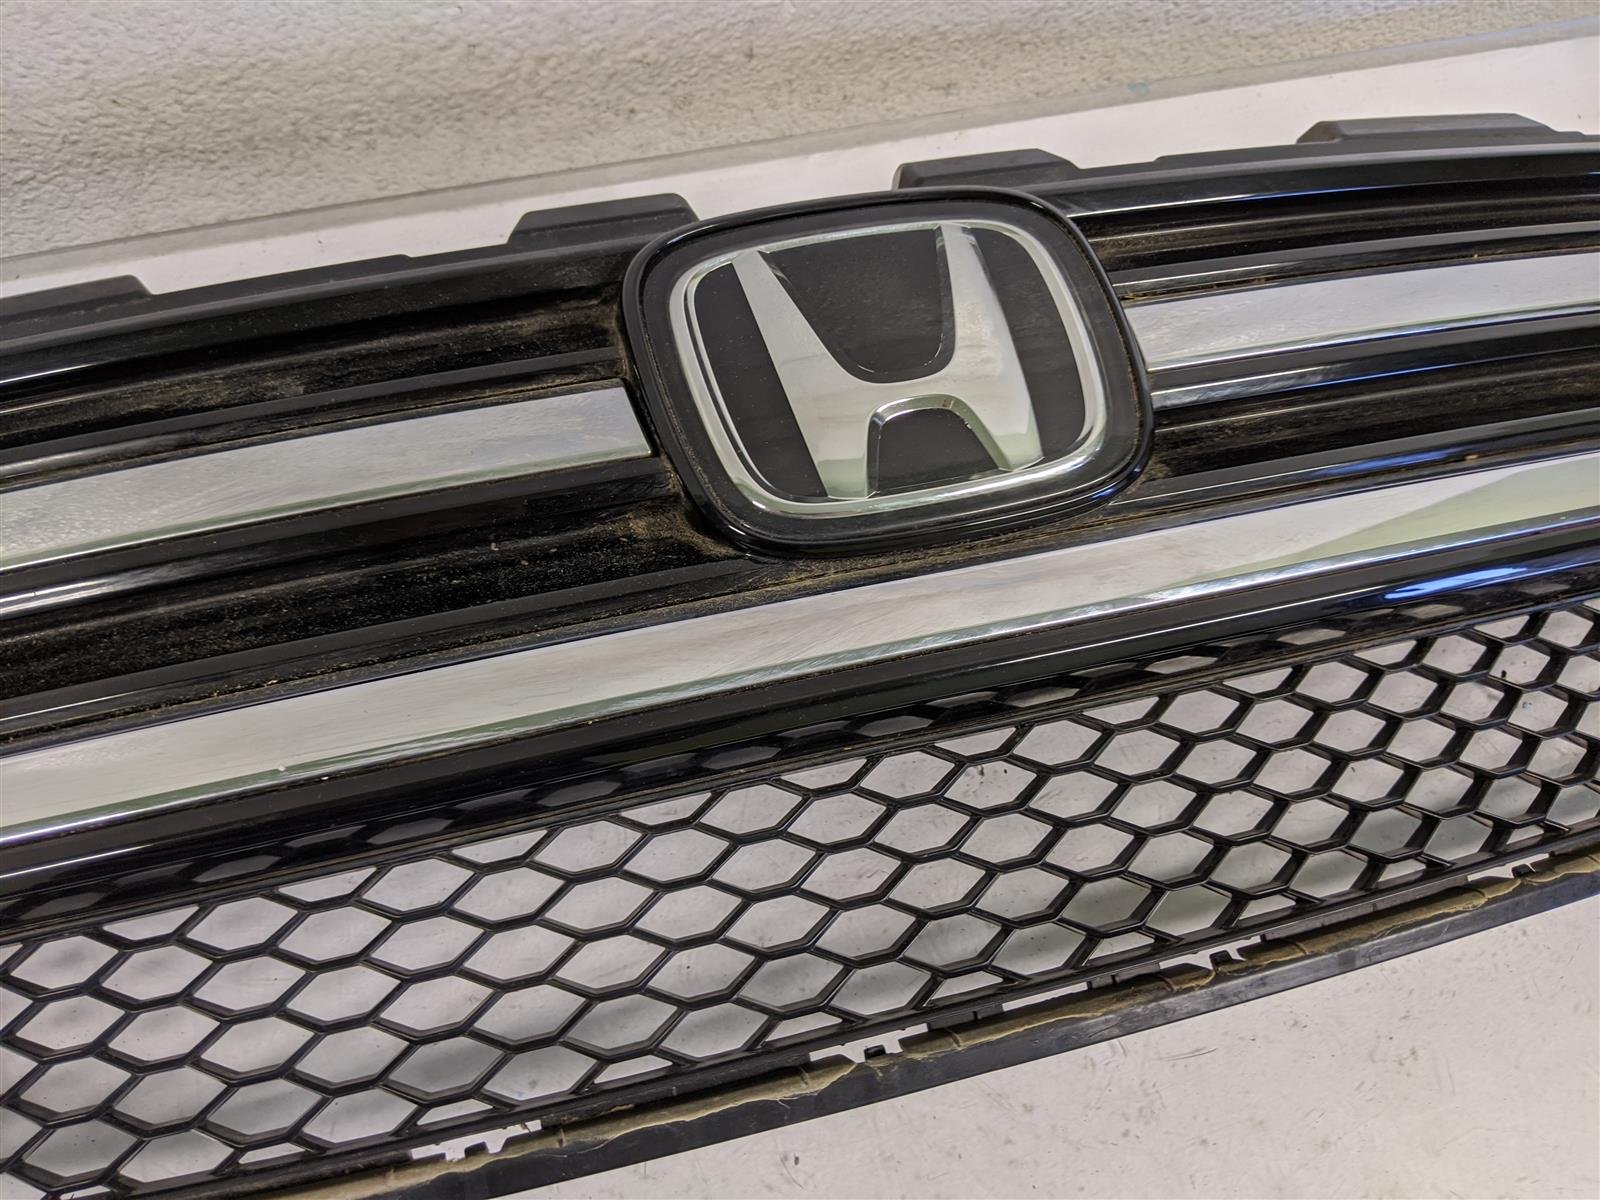 2017 Honda Pilot Grille Assembly Elite Replacement